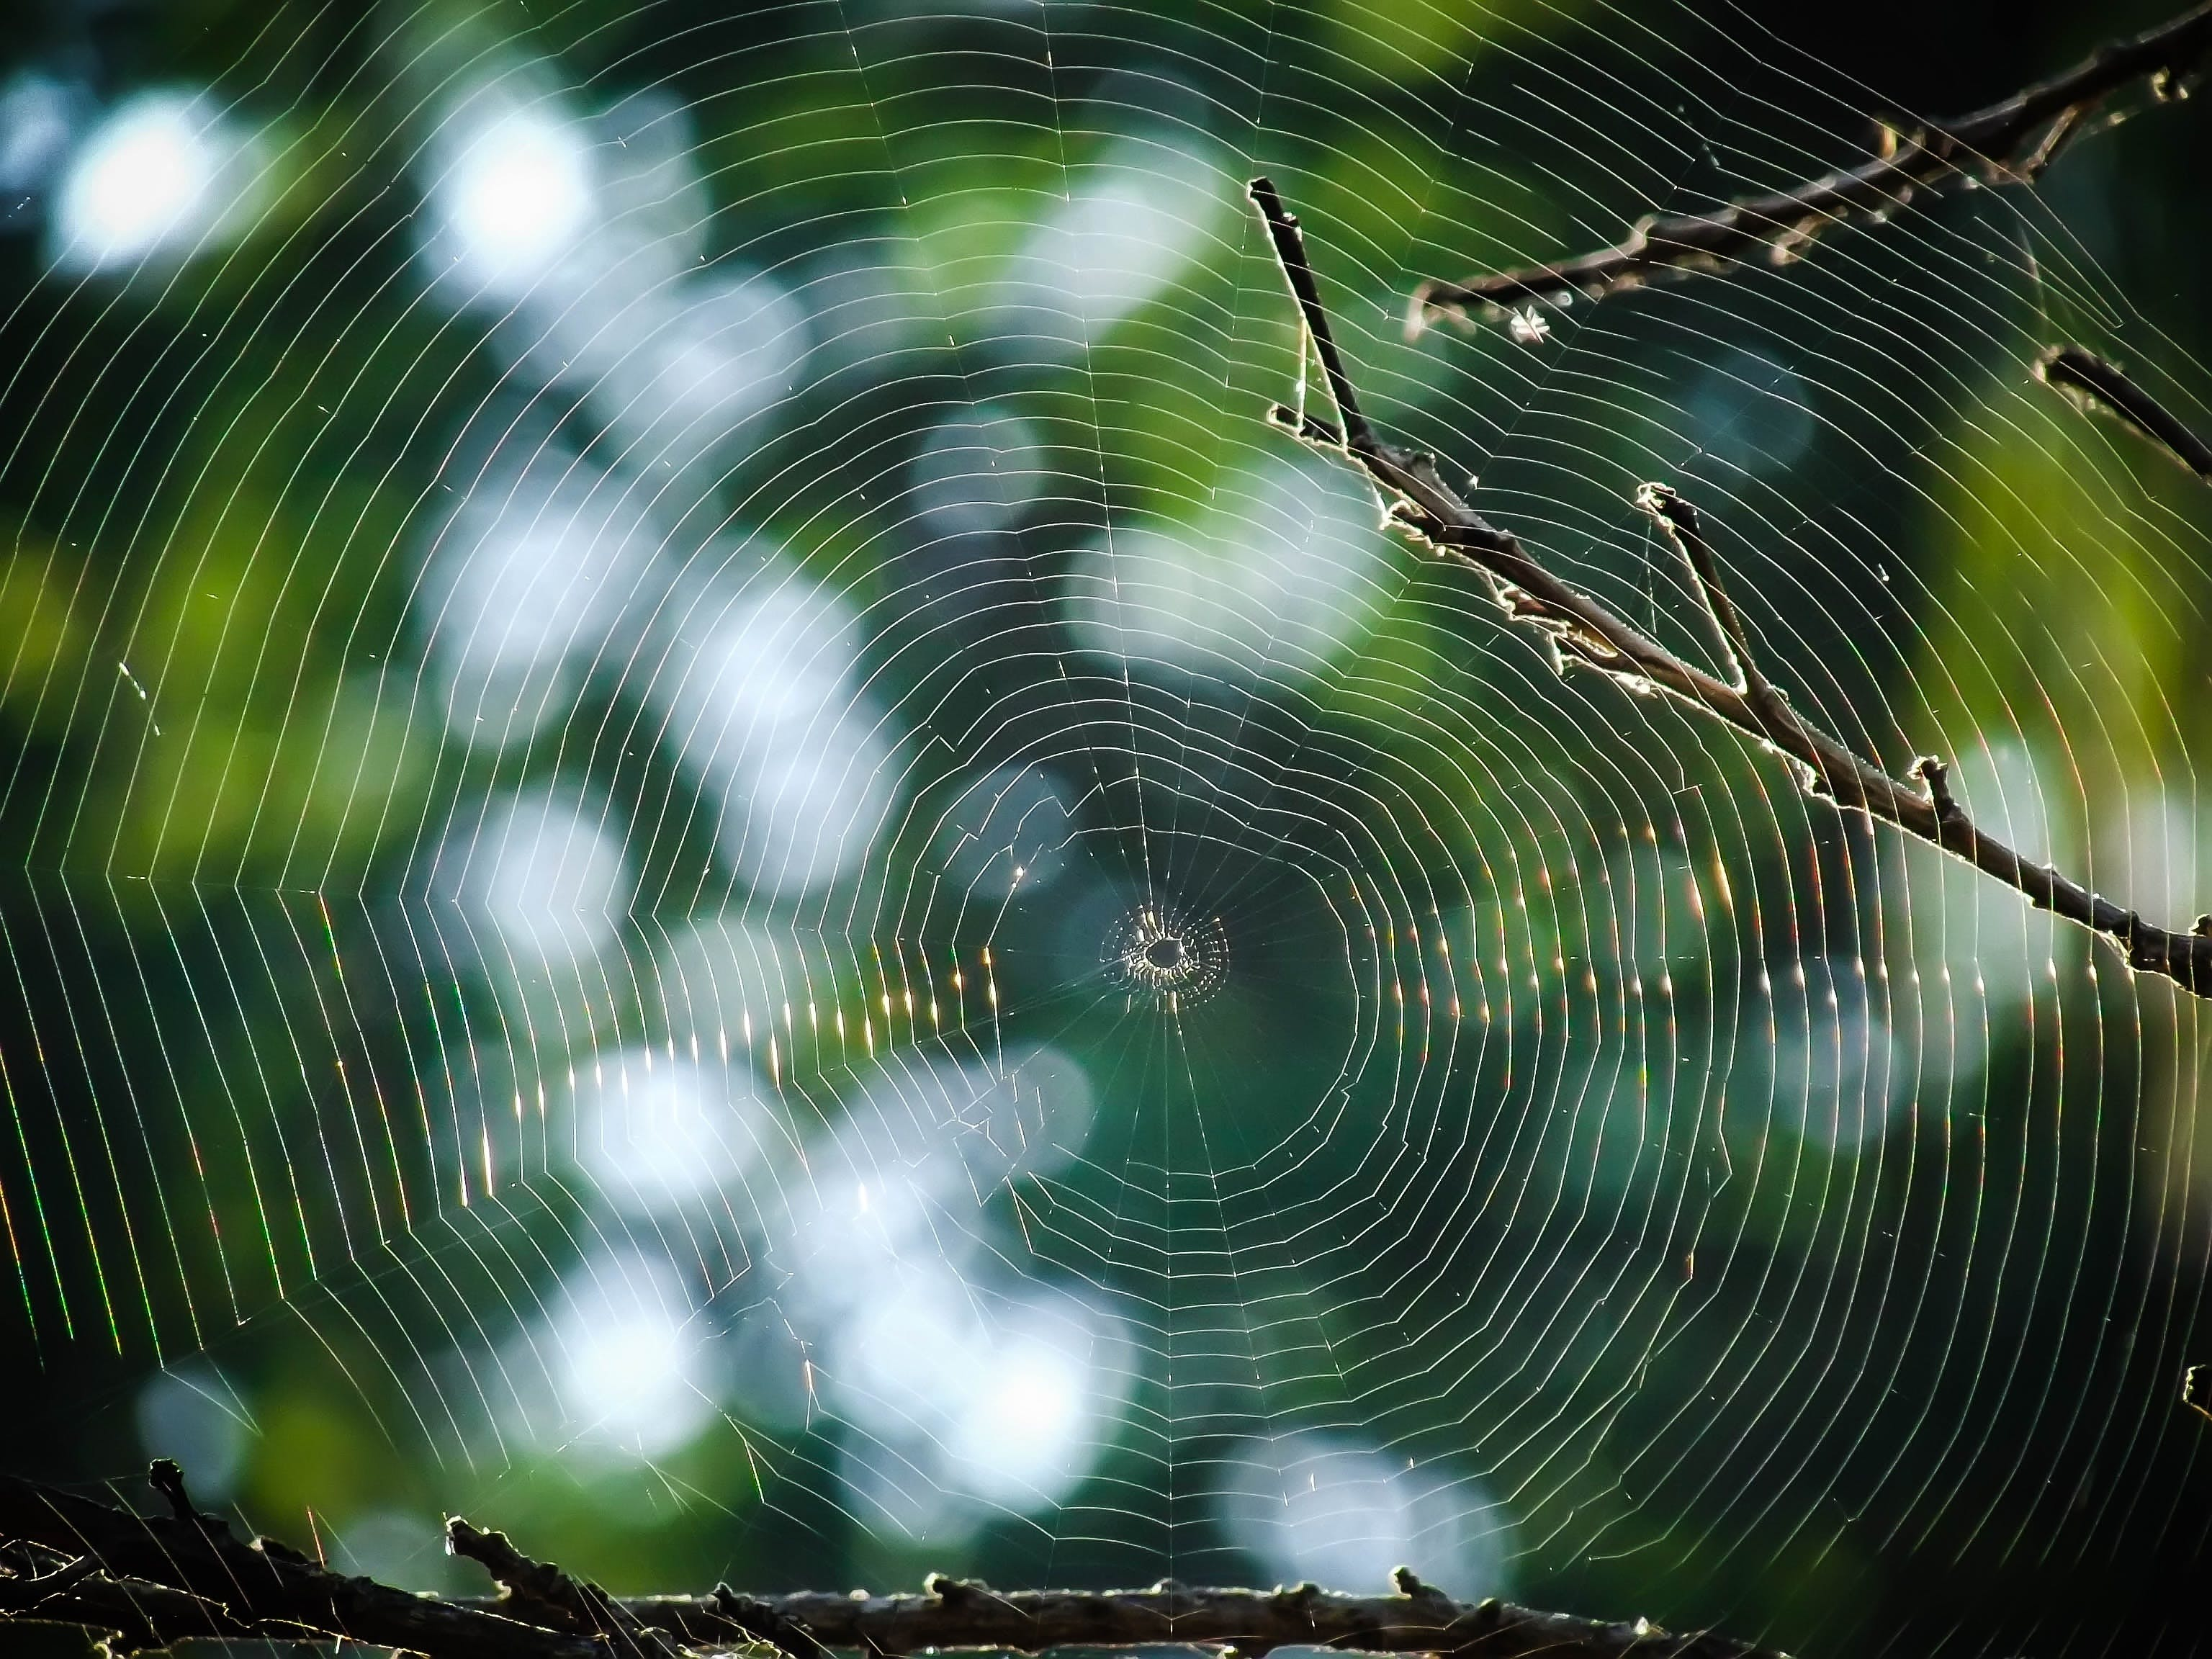 blur, close-up, cobweb